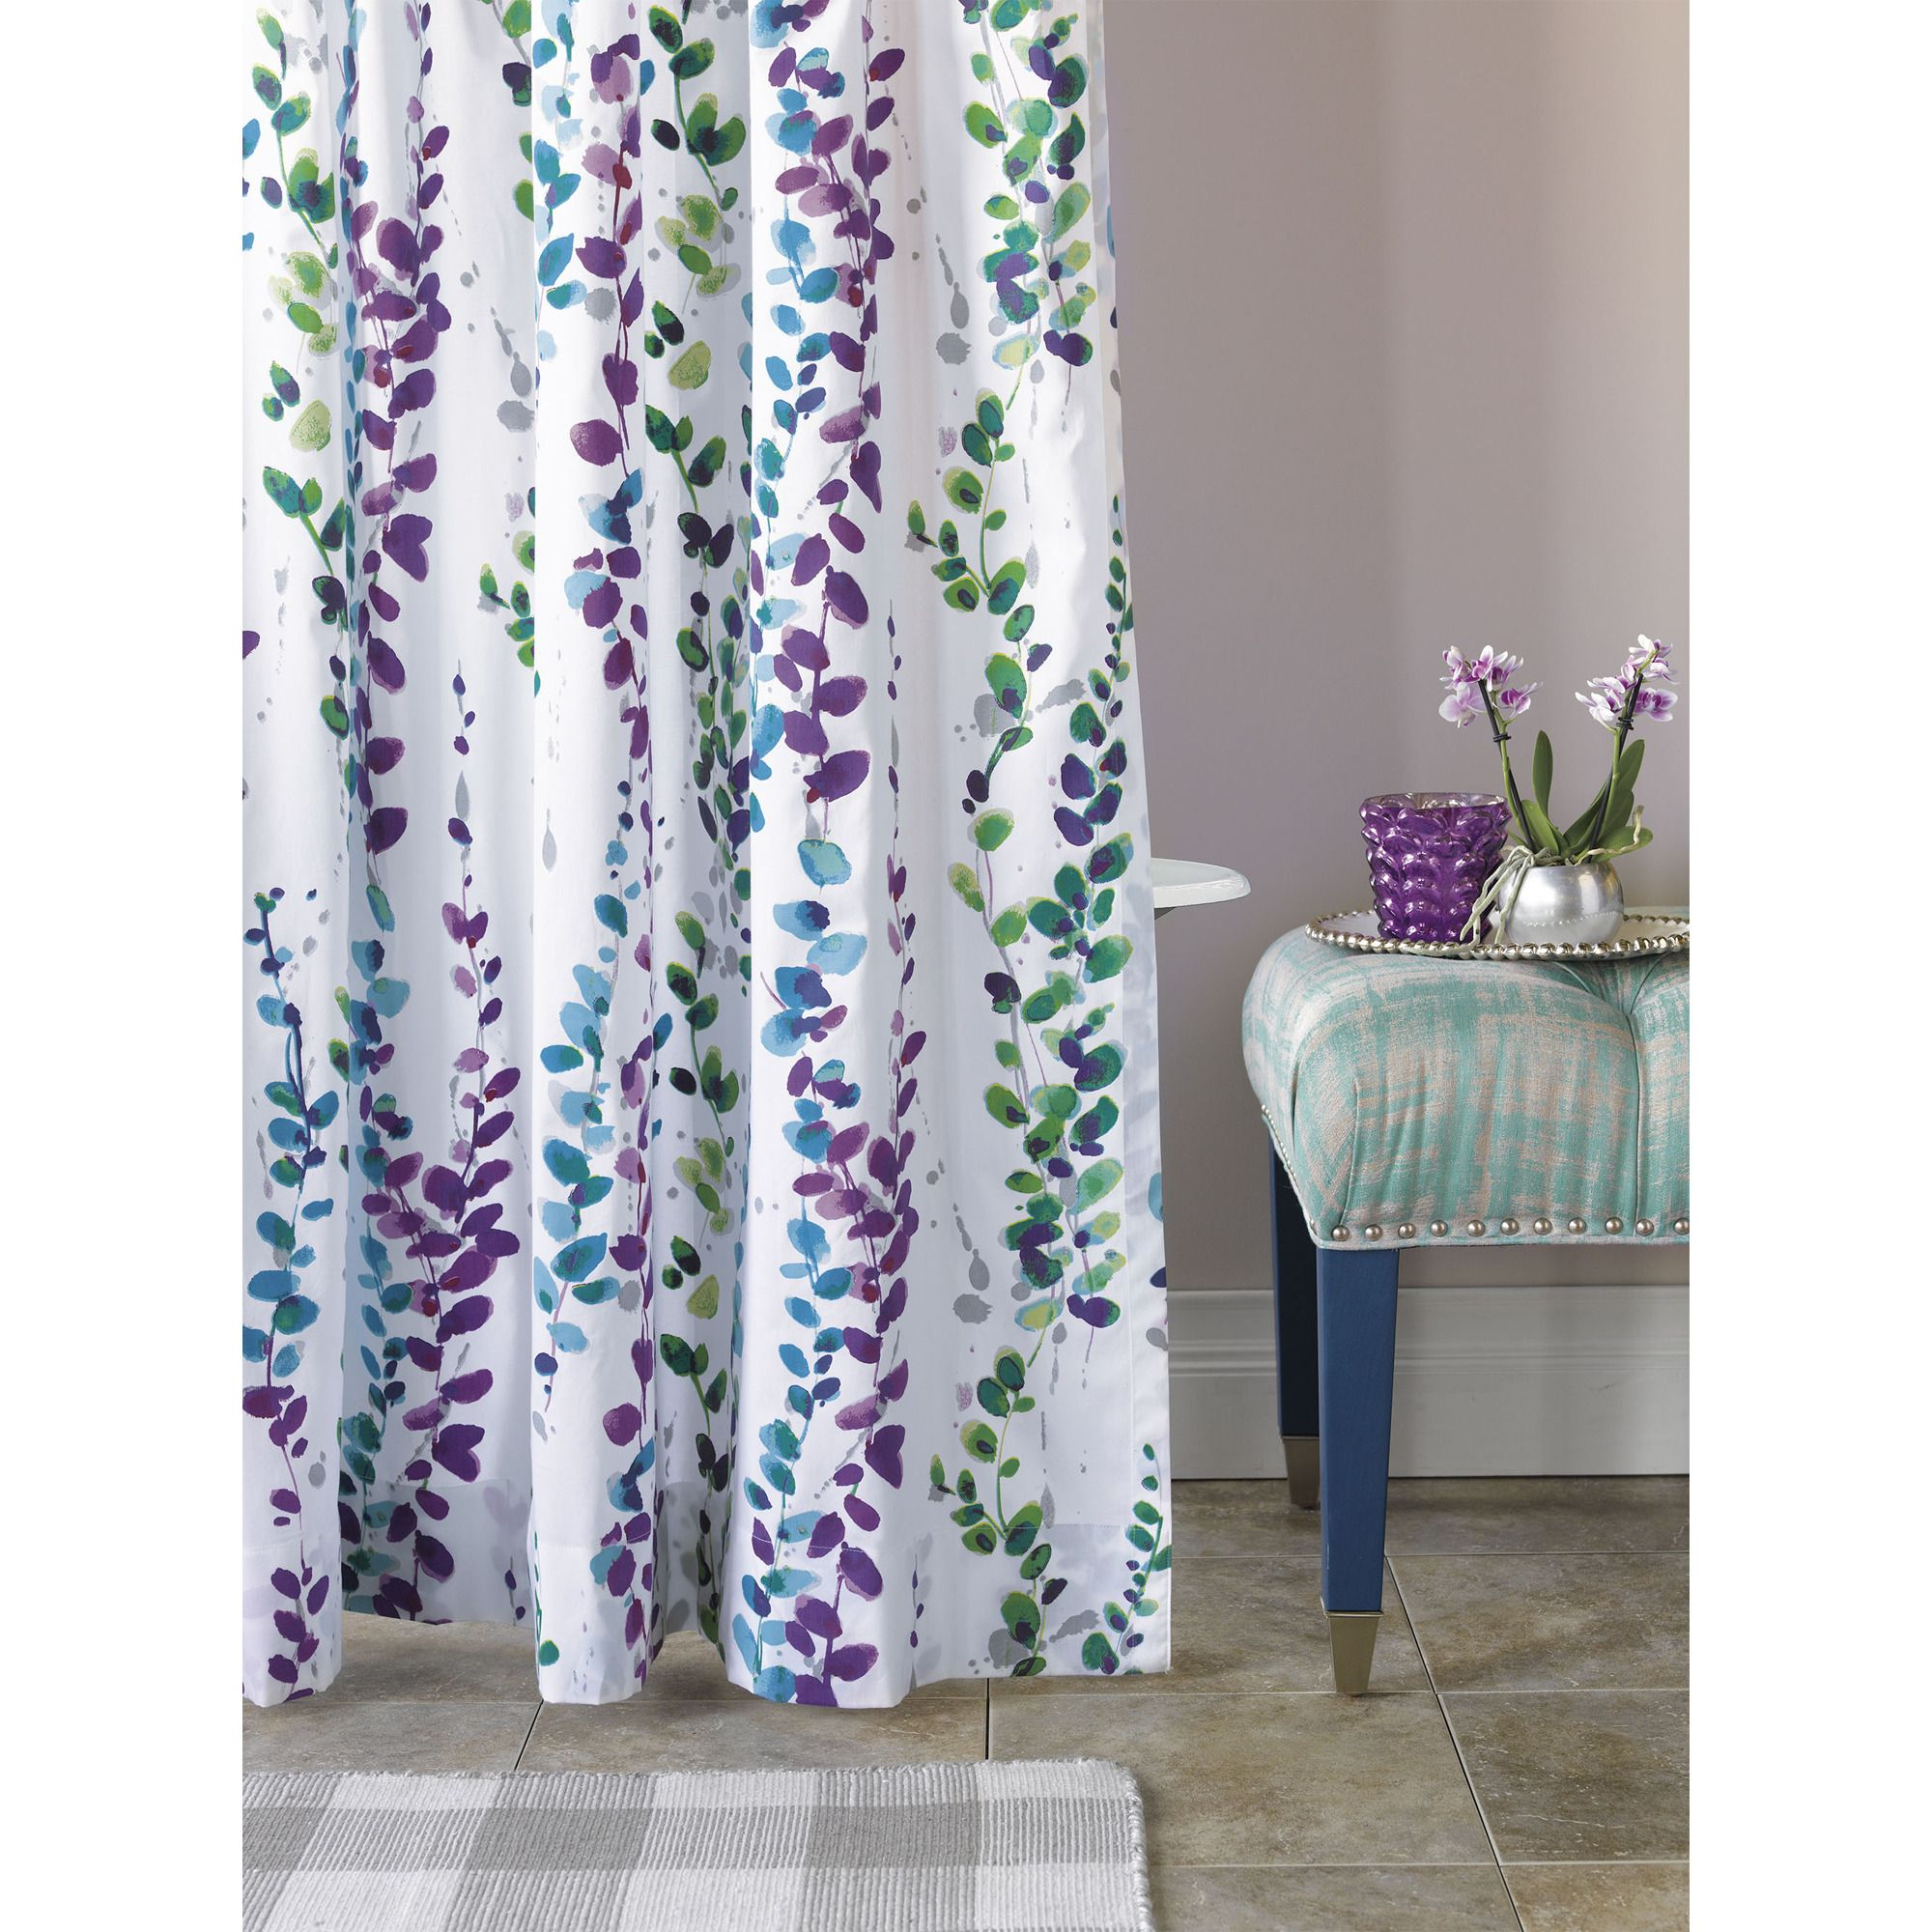 ga curtains online full size drapery andapes illinois drapes near concept pa touch in pictures curtain stores of philadelphia class and long storescurtains fearsome curtainapery snellville